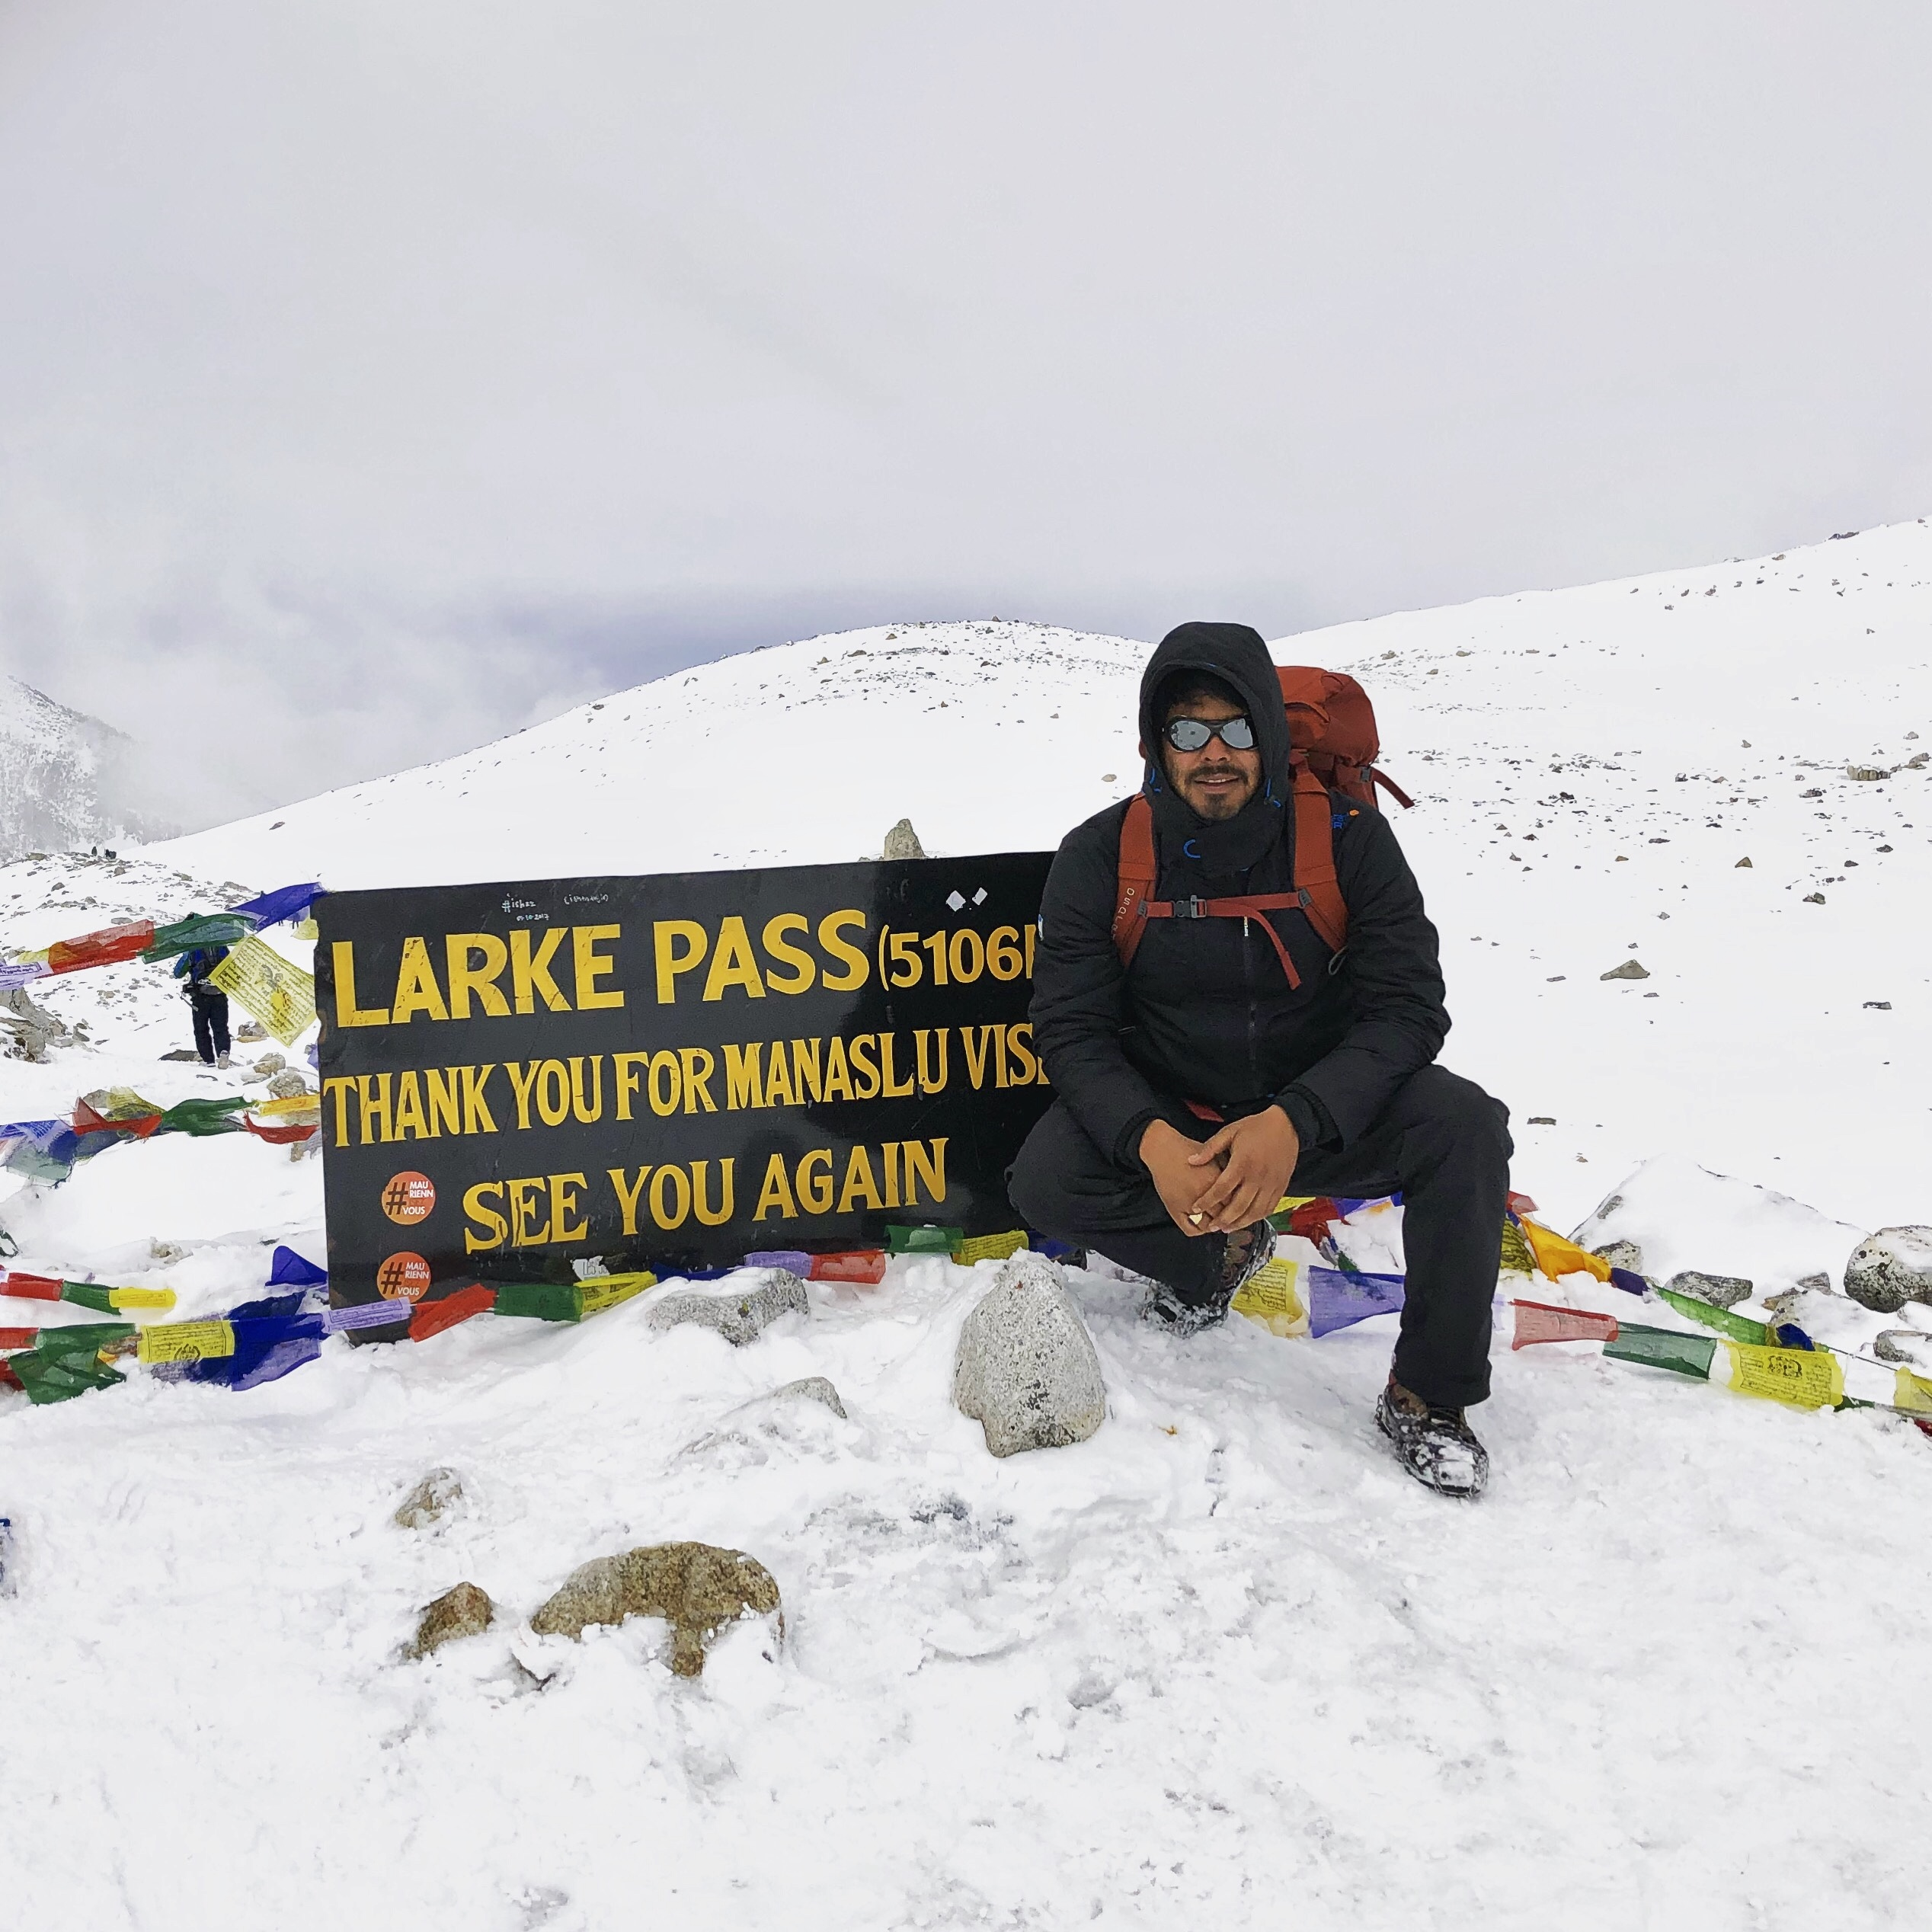 At Larke Pass (5106m), the highest point of the Trek